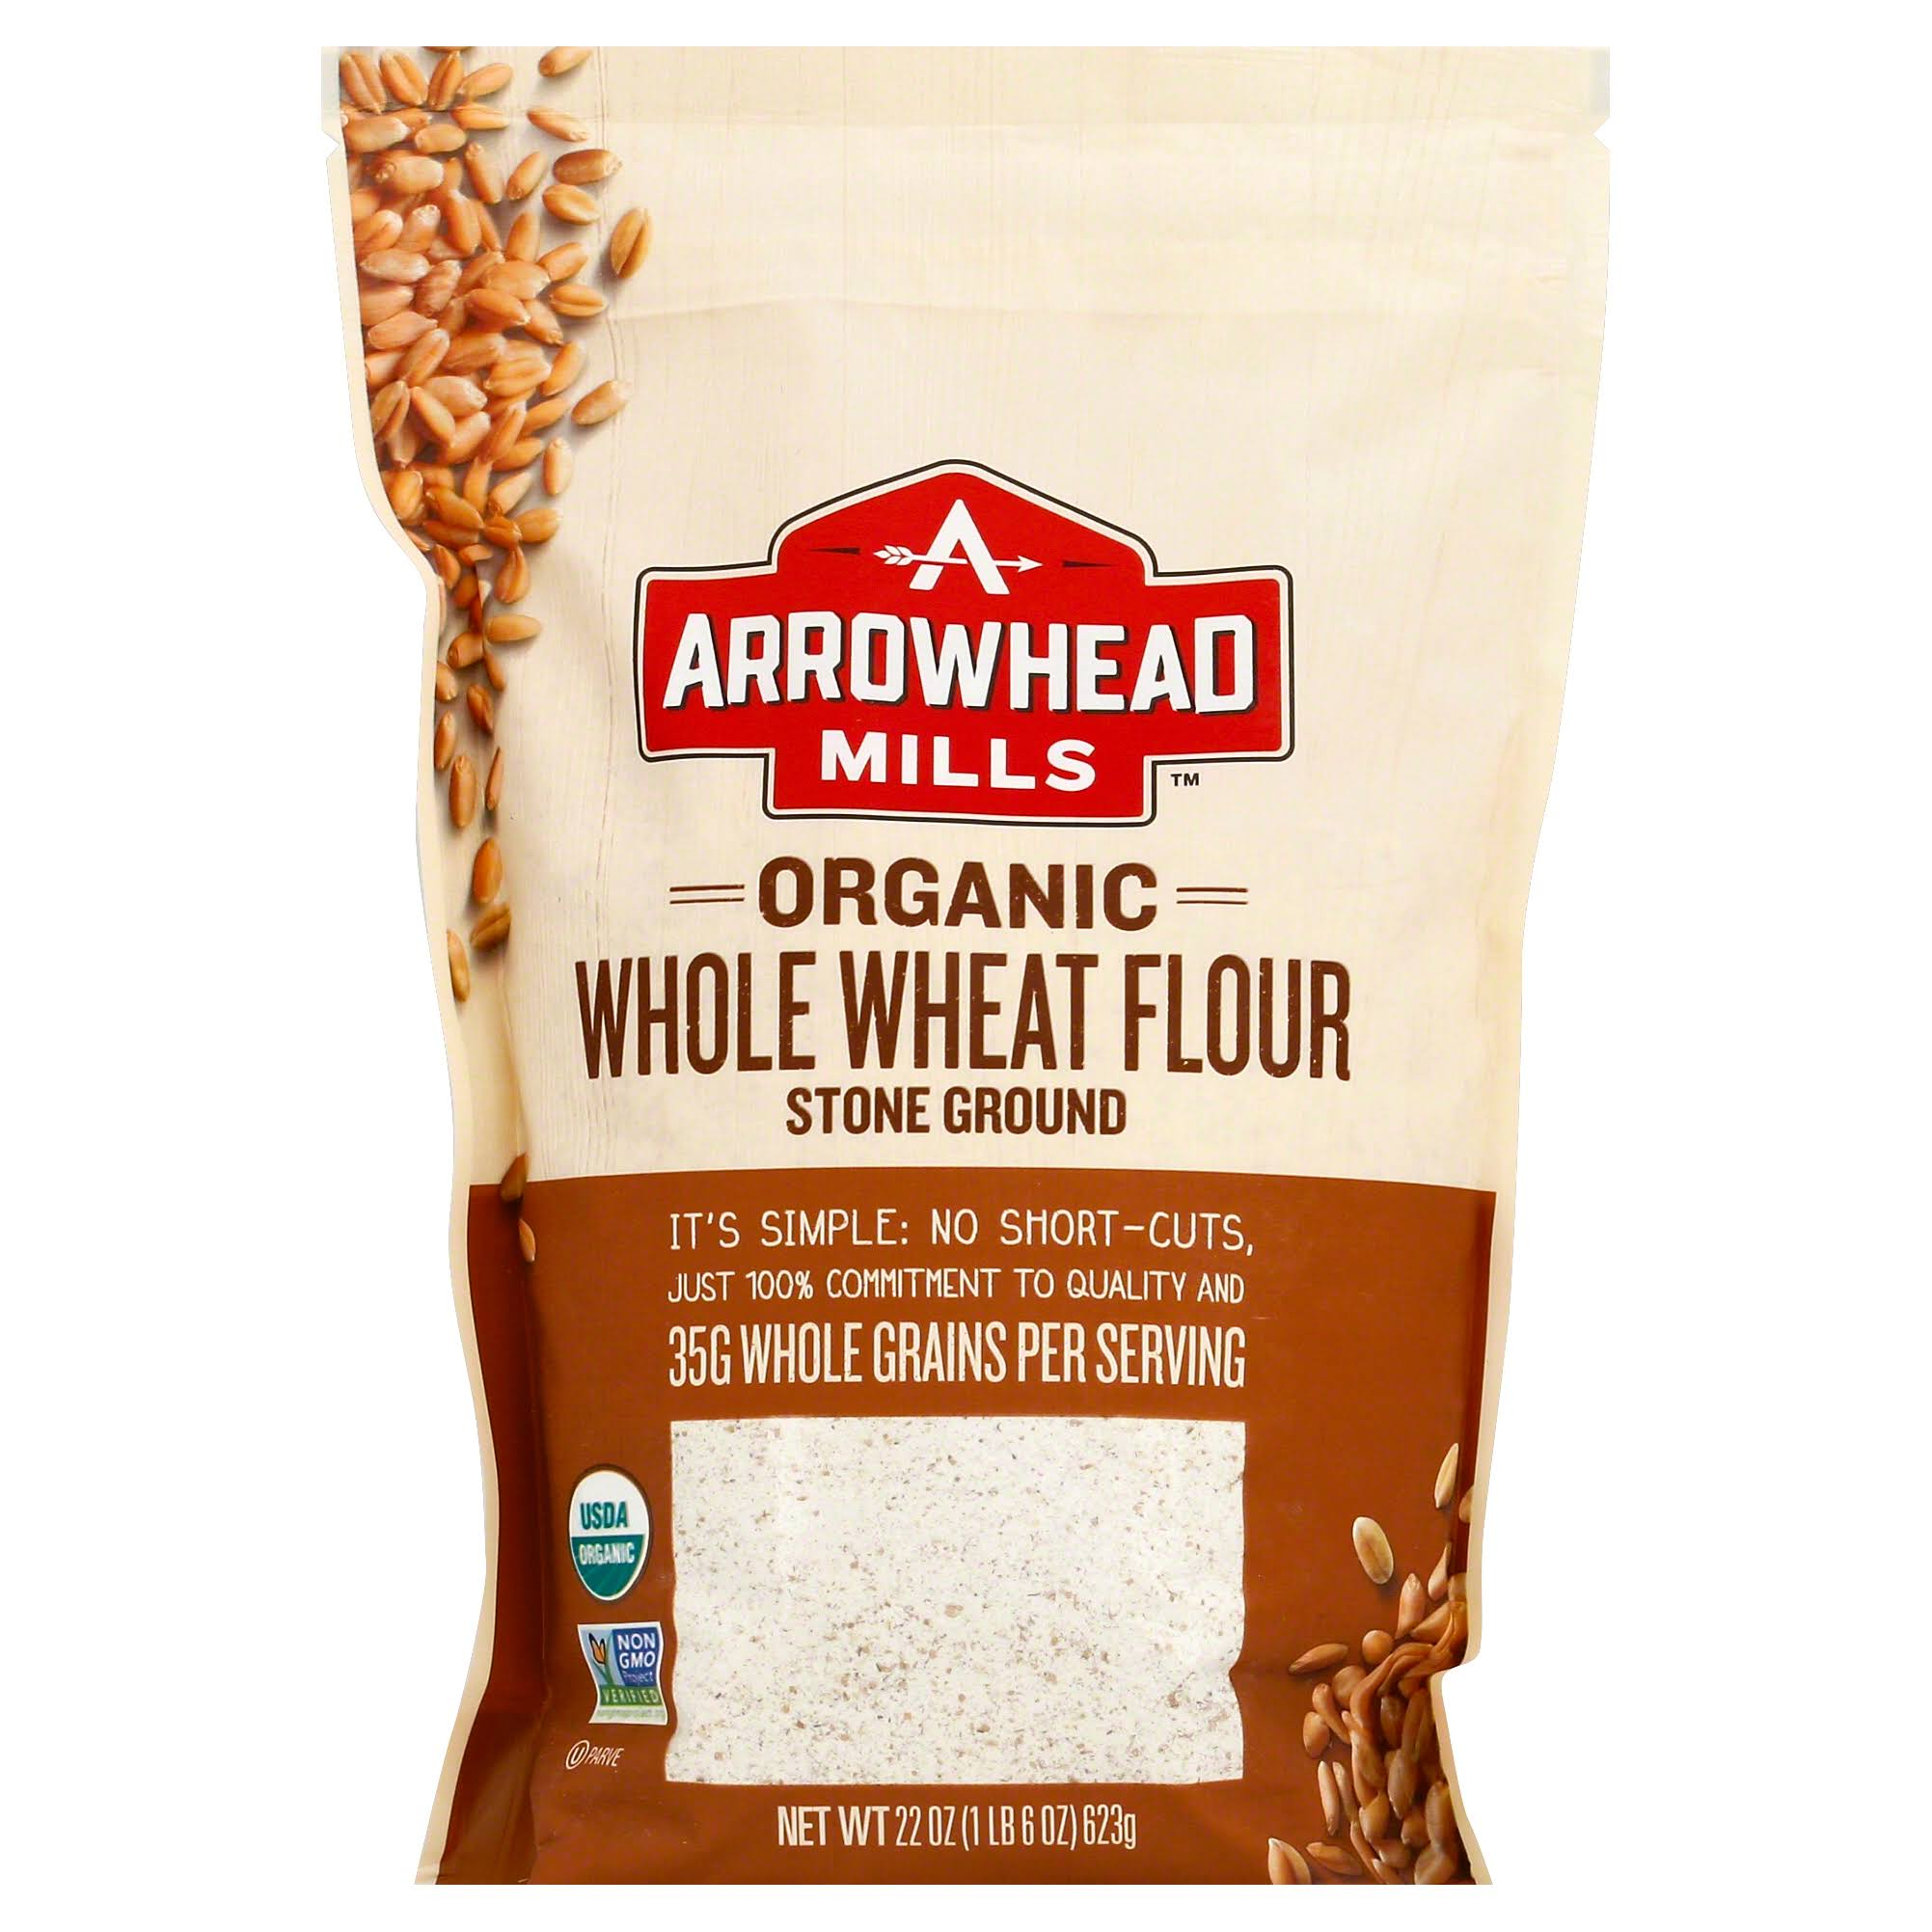 Arrowhead Mills Whole Wheat Flour, Organic, Stone Ground - 22 oz